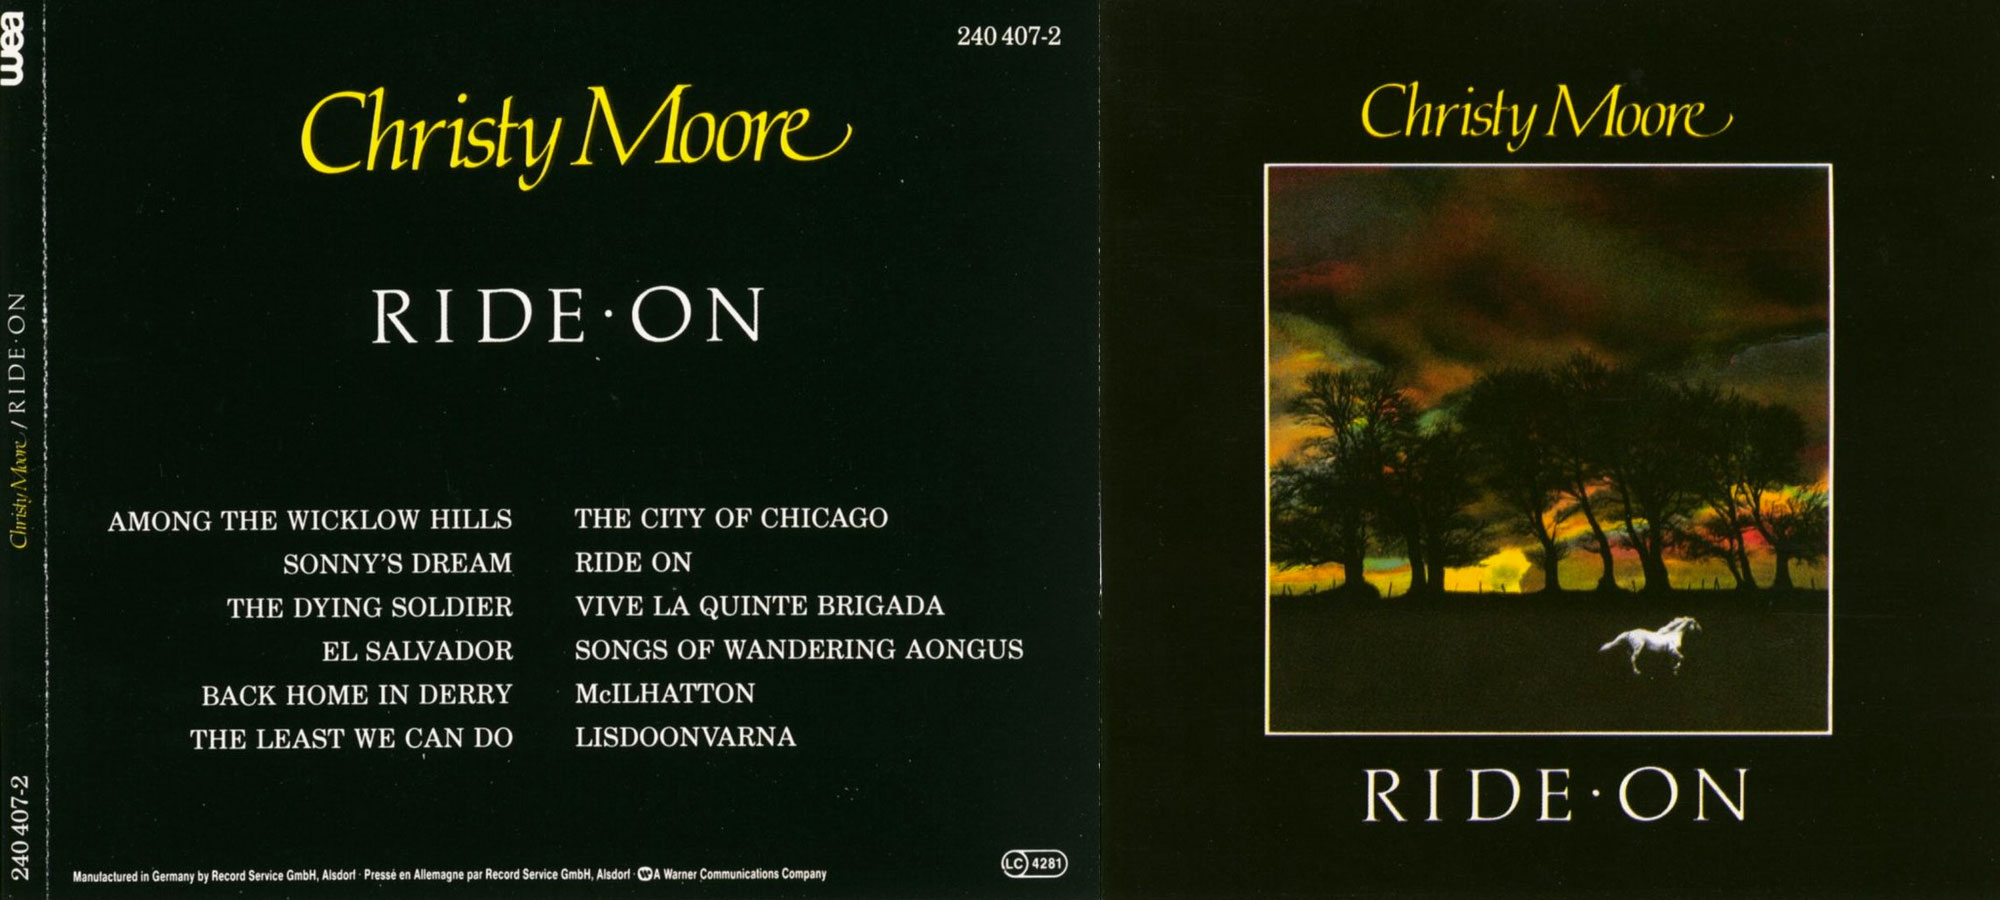 christy moore ride on - photo #4